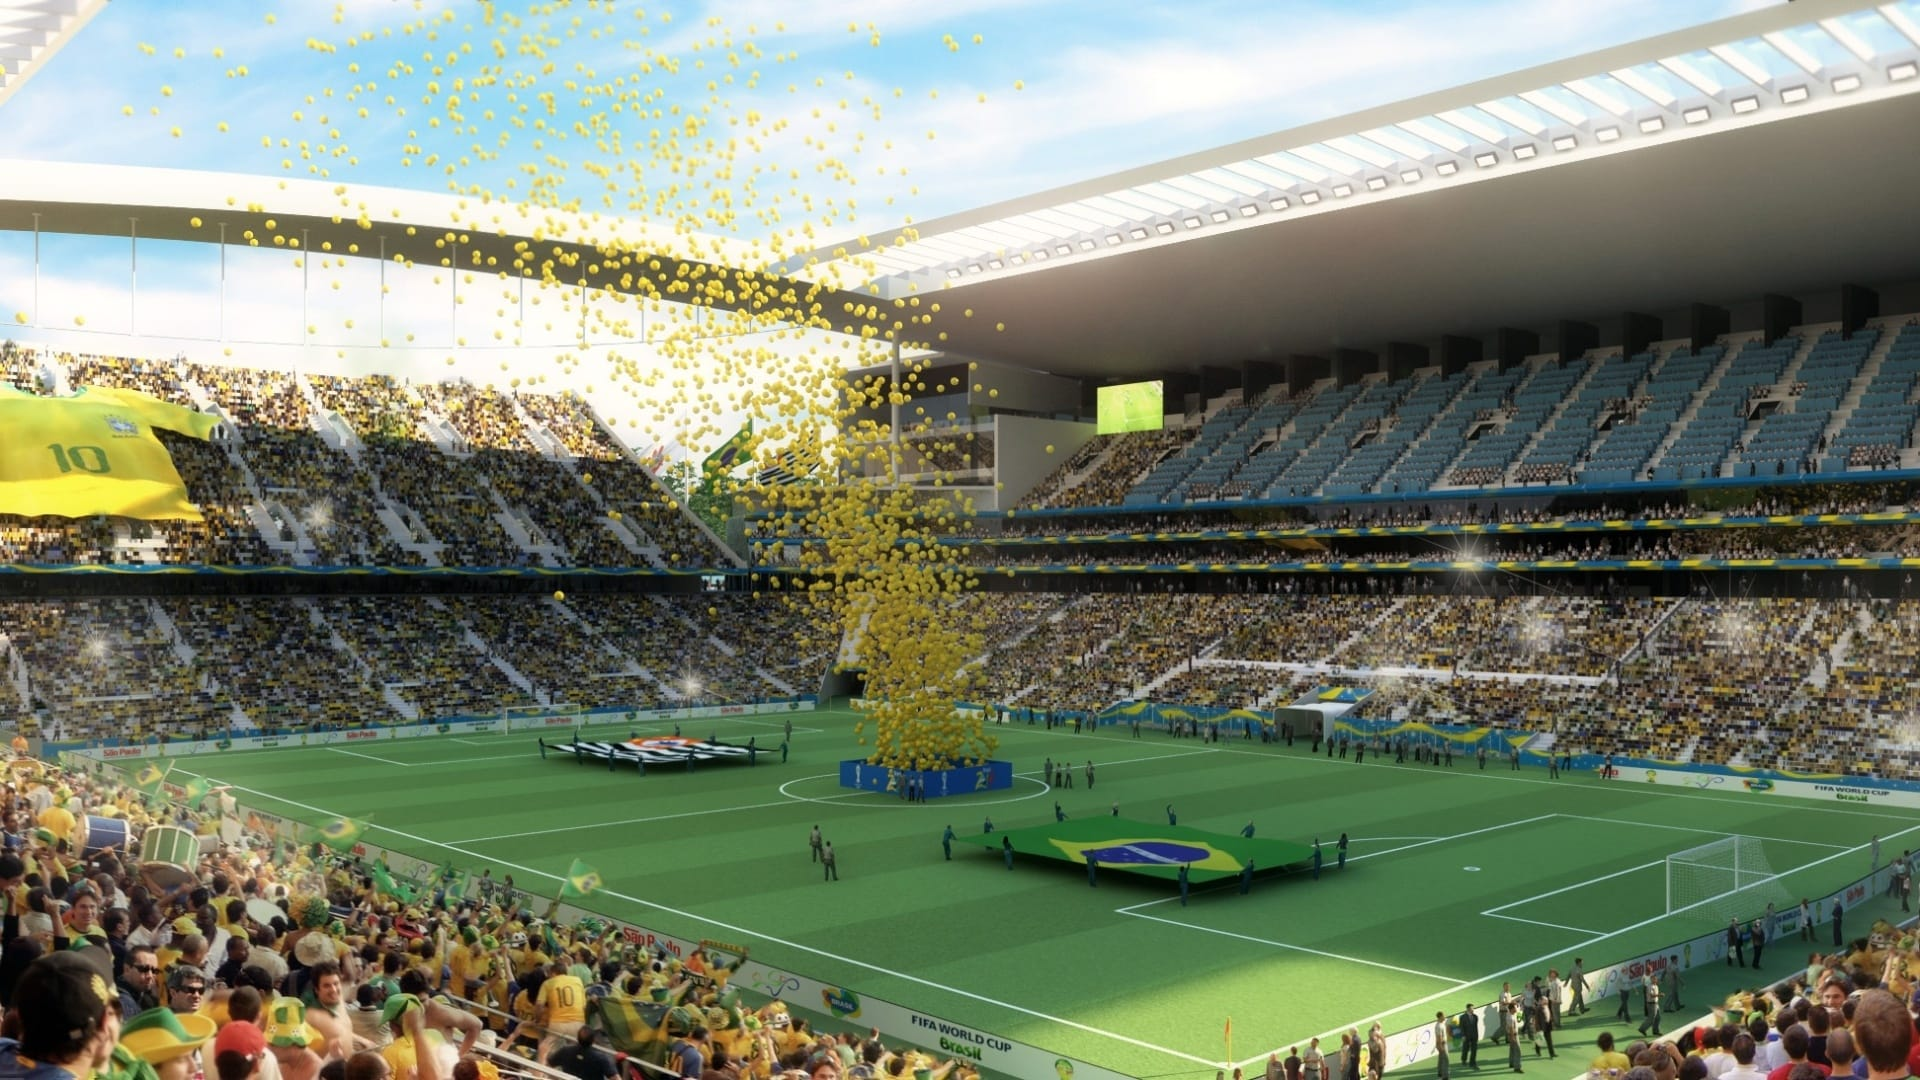 2014 Football/Soccer World Cup Arena